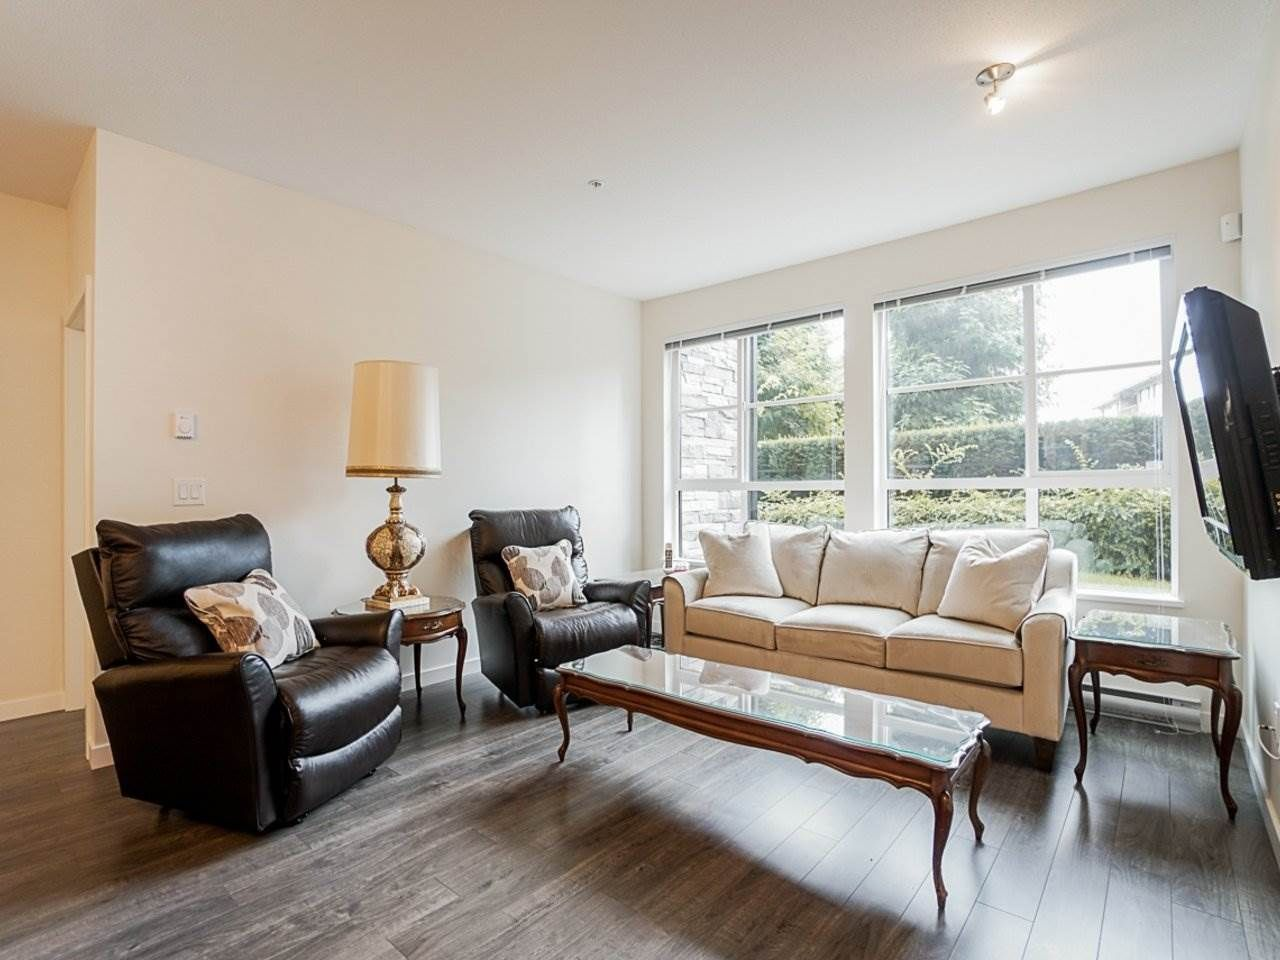 Photo 7: Photos: 108 1151 WINDSOR Mews in Coquitlam: New Horizons Condo for sale : MLS®# R2500299